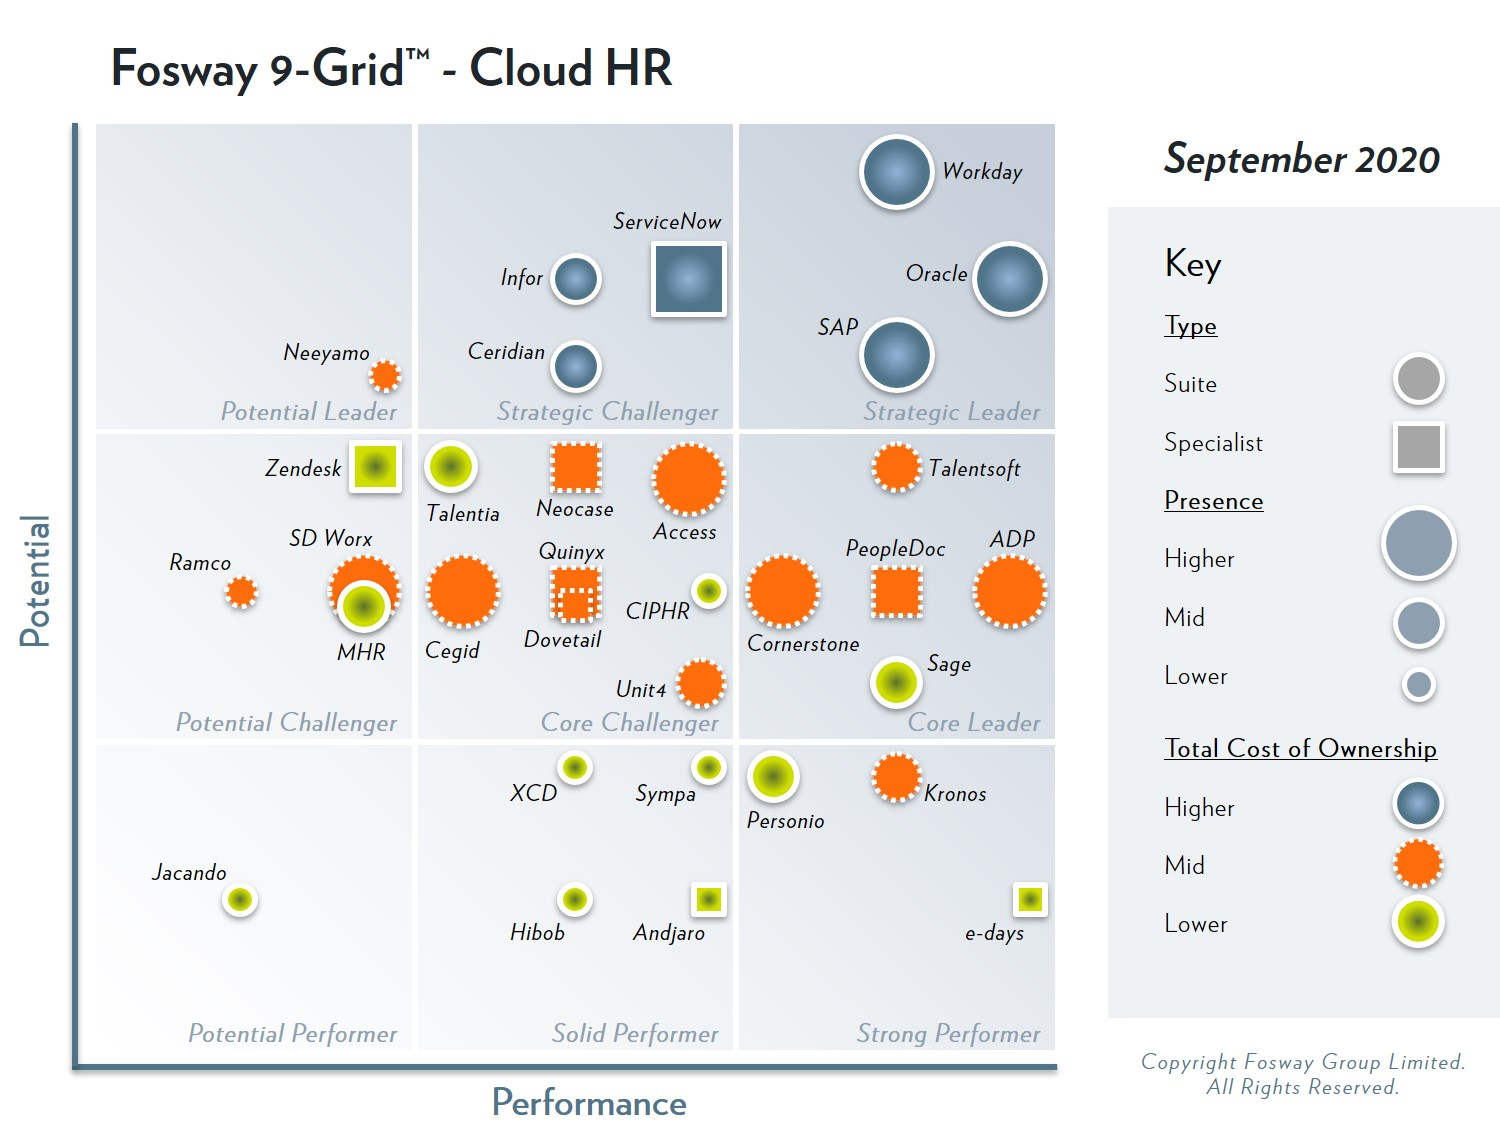 e-days debuts on Fosway 9 Grid for Cloud HR